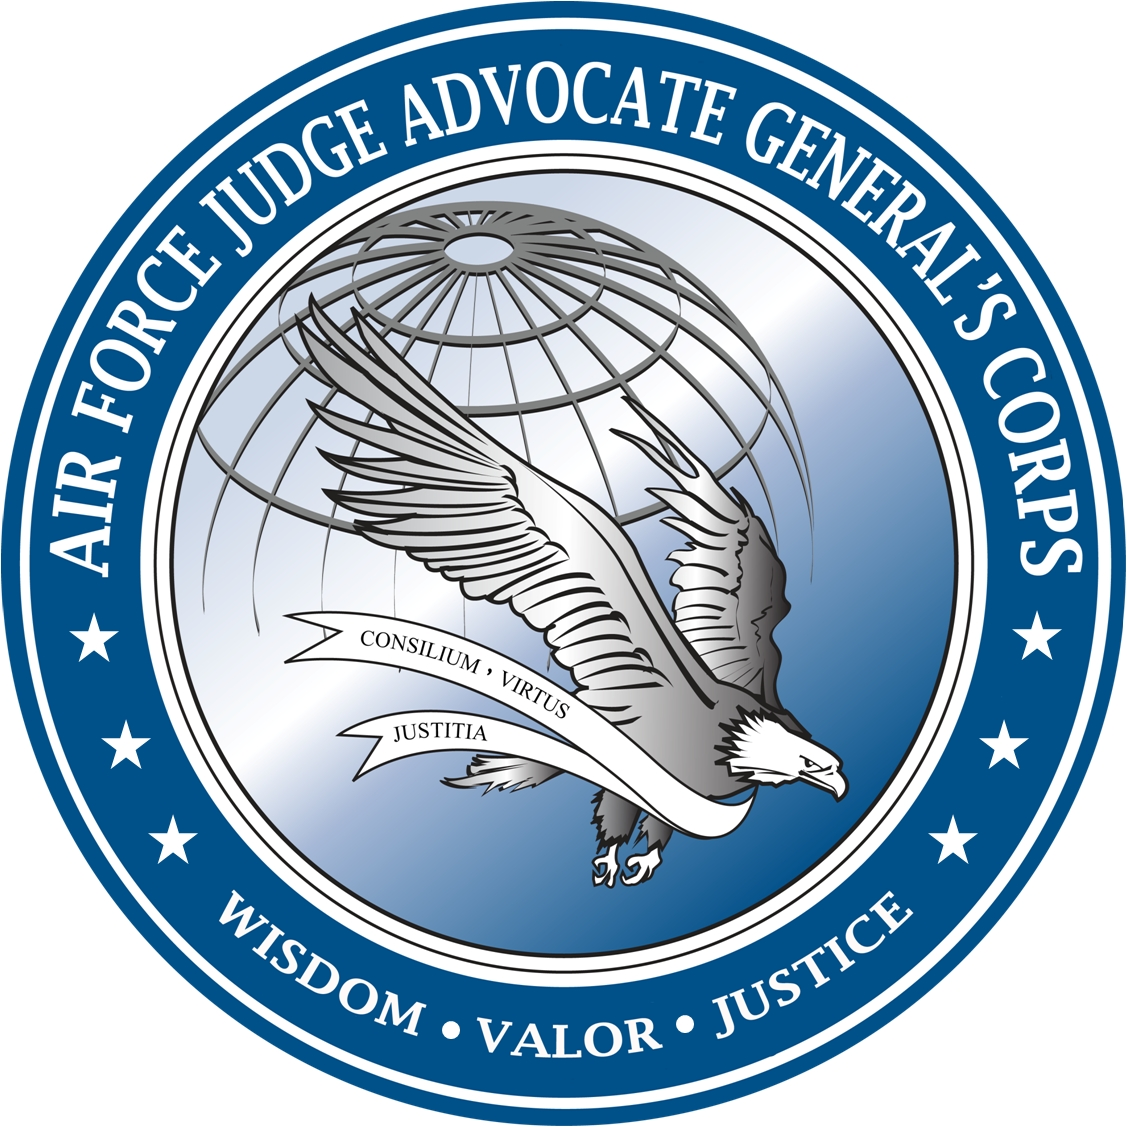 Air Force Judge Advocate General's Corps